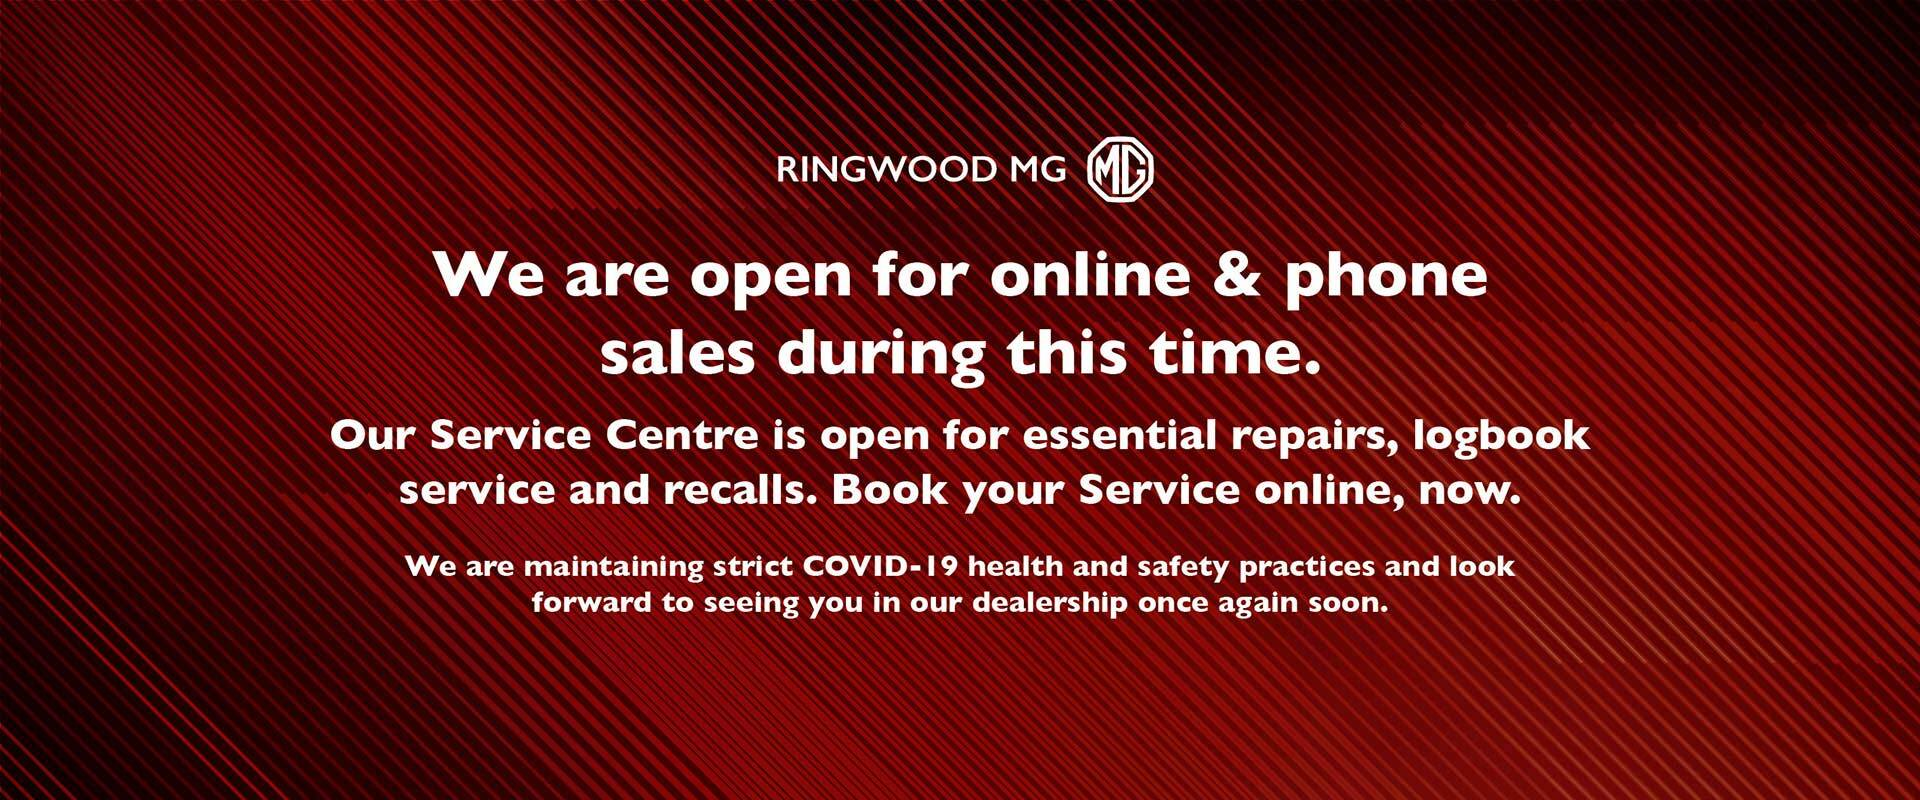 We are open for online and phone sales during this time and our Service Centre is open.